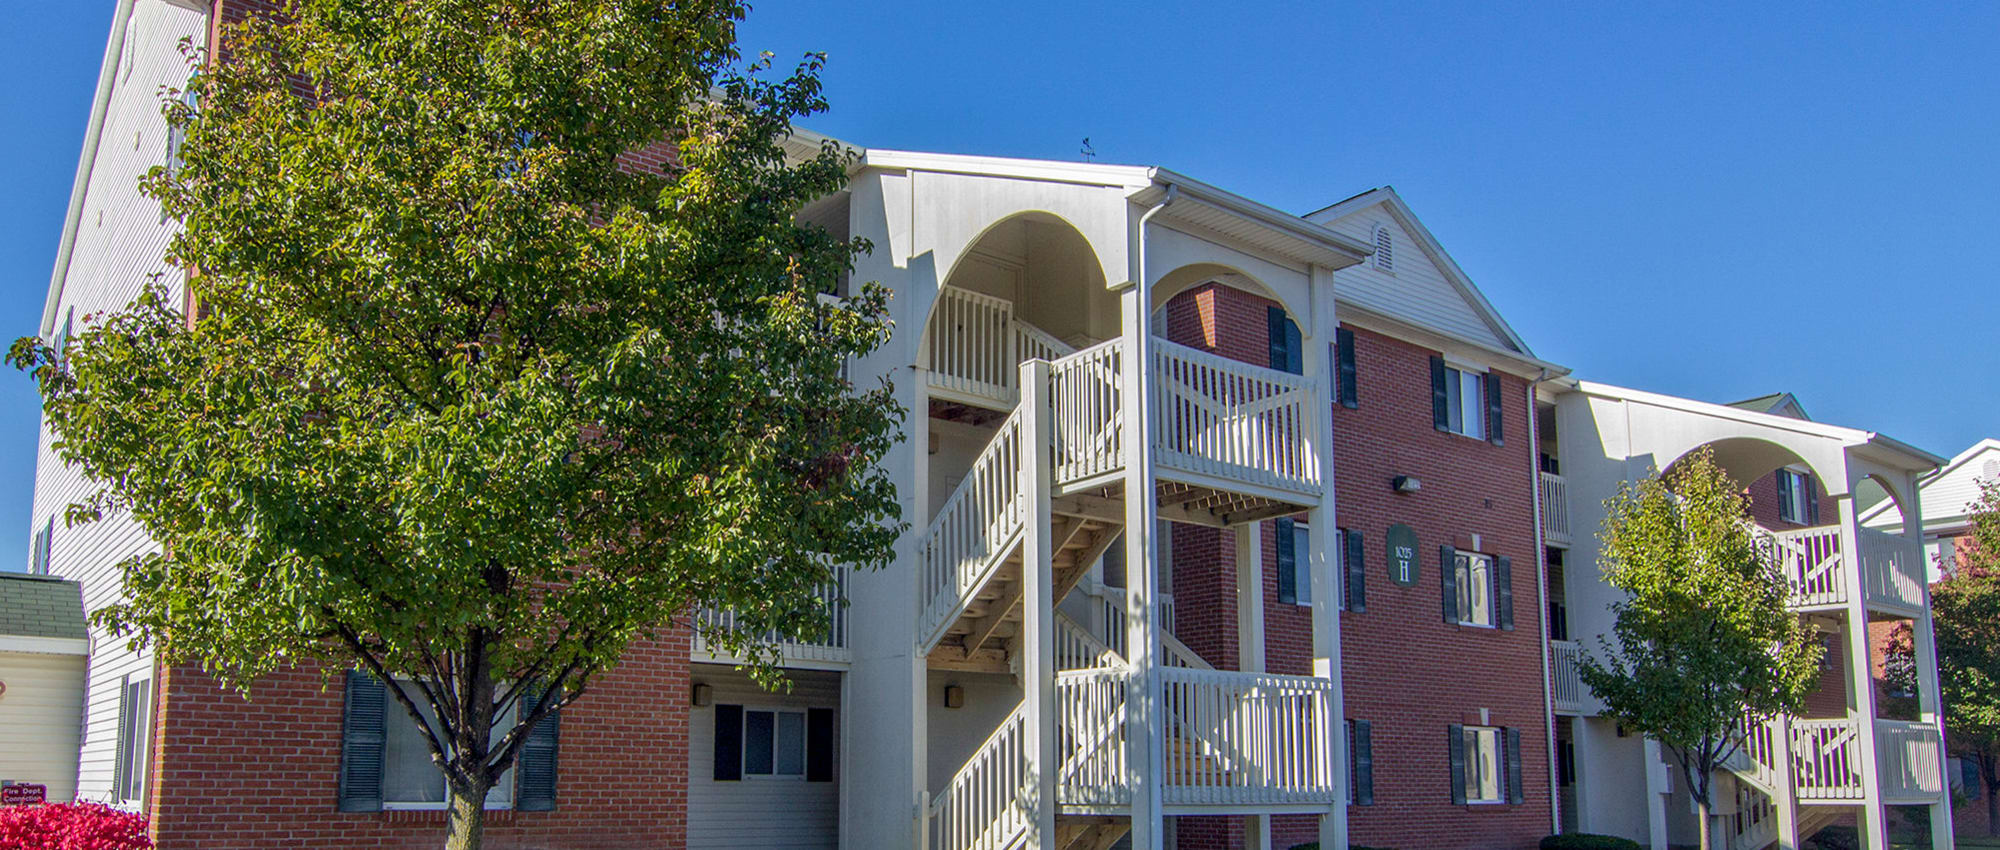 Steeplechase Apartments & Townhomes in Toledo, Ohio